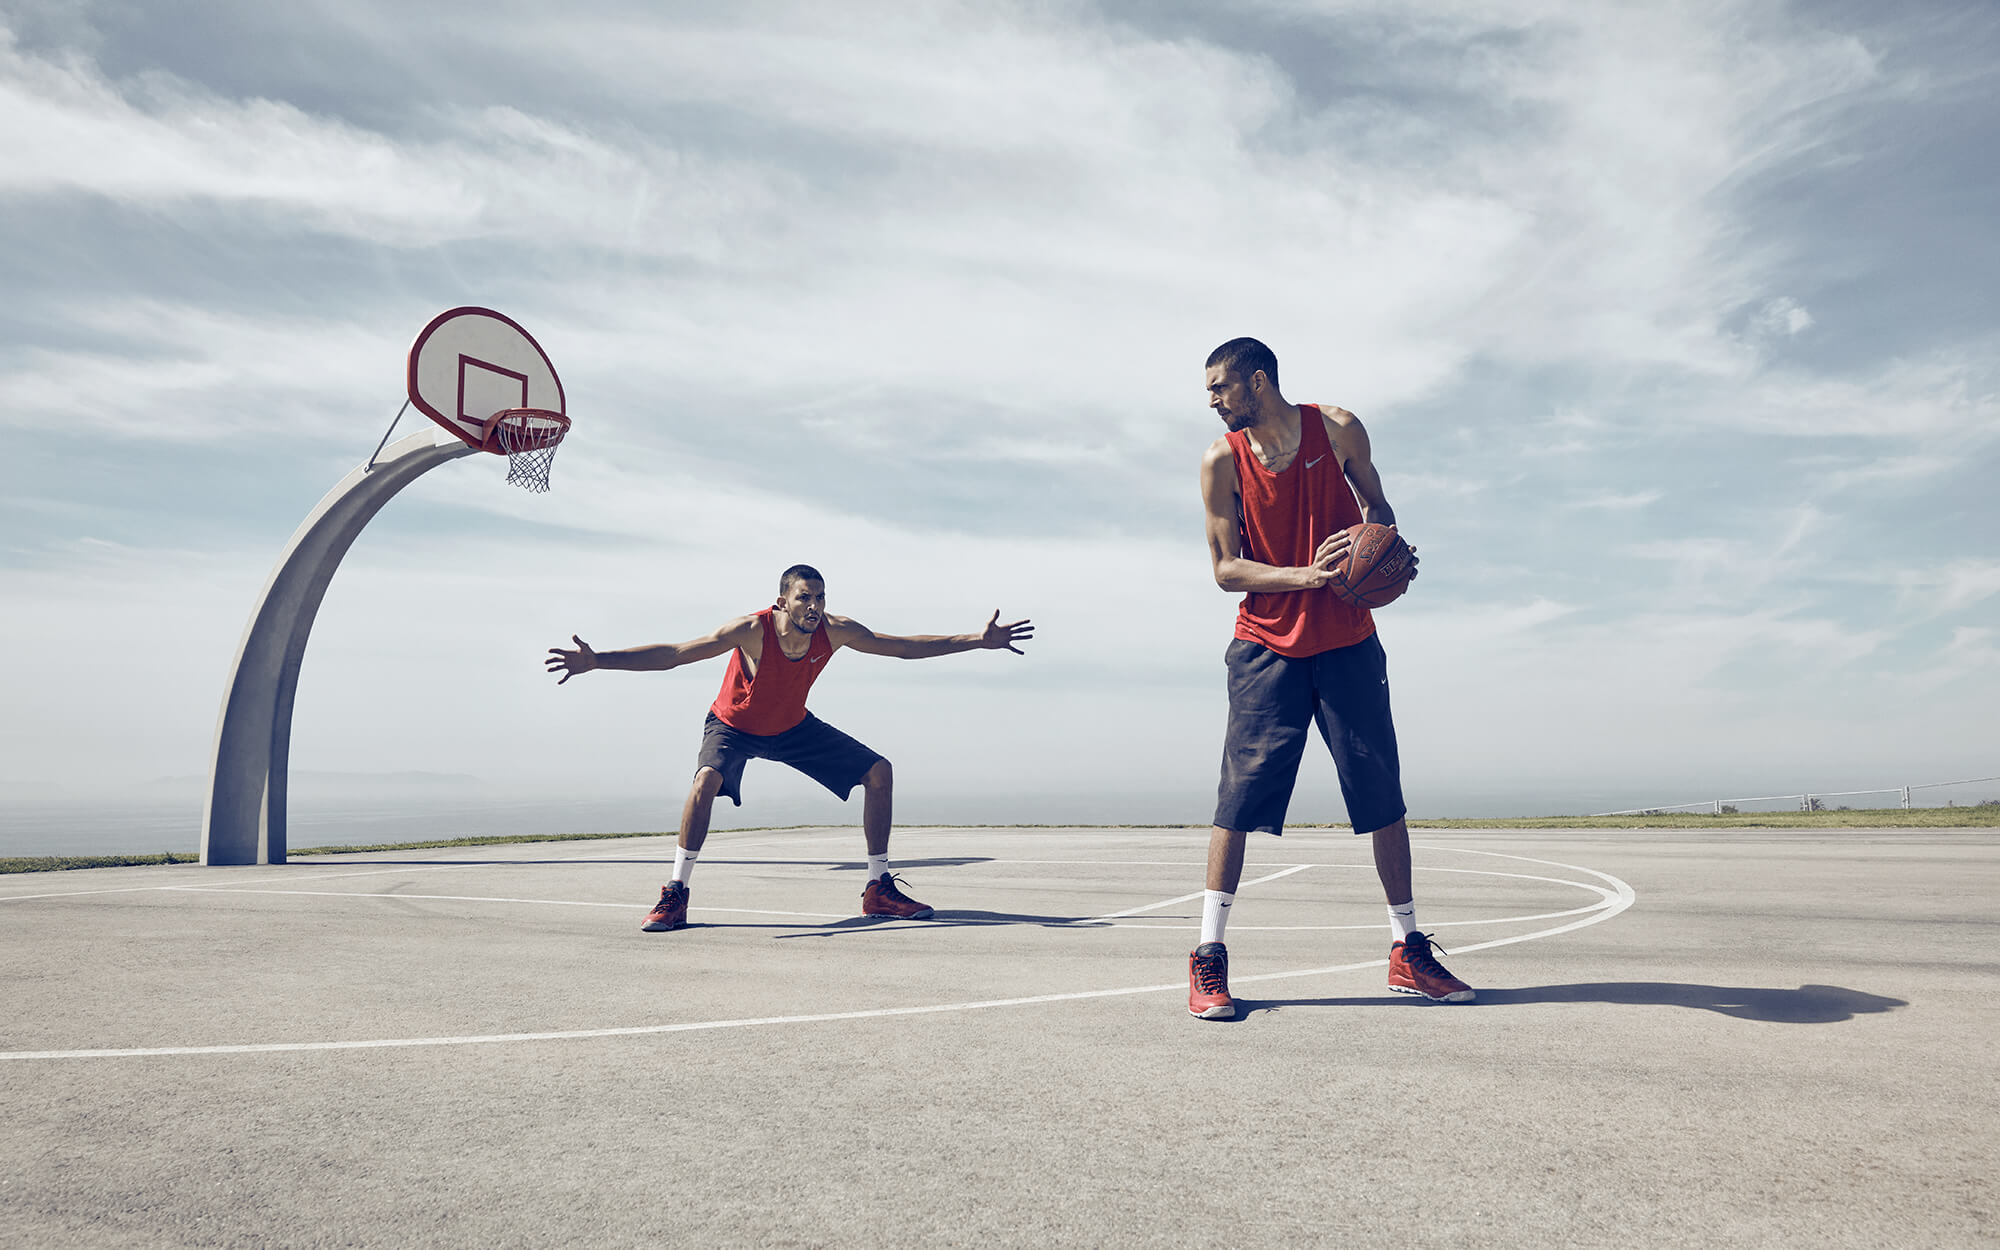 Unified Content, Unified Content Toronto, Aaron Cobb, Basketball, Jules Montgomery, Professional Basketball Player, Outdoor court, slam dunk, athlete, action shot, athlete, professional athlete, dunk,